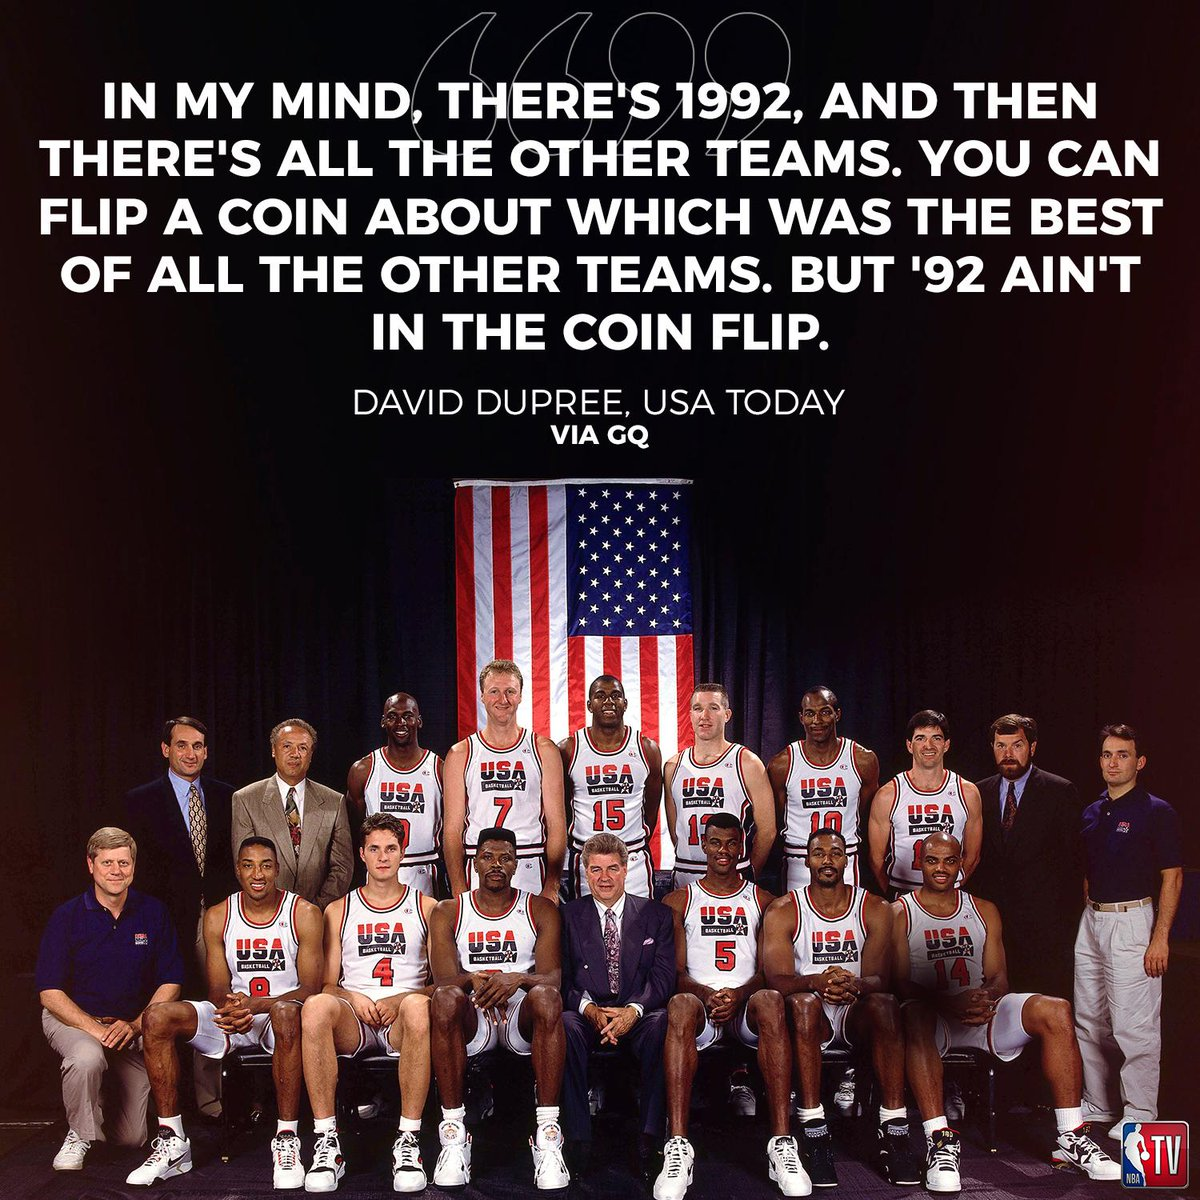 """26 years ago today, @usabasketball announced the """"Dream Team"""" members for the 1992 Olympics. #TBT"""